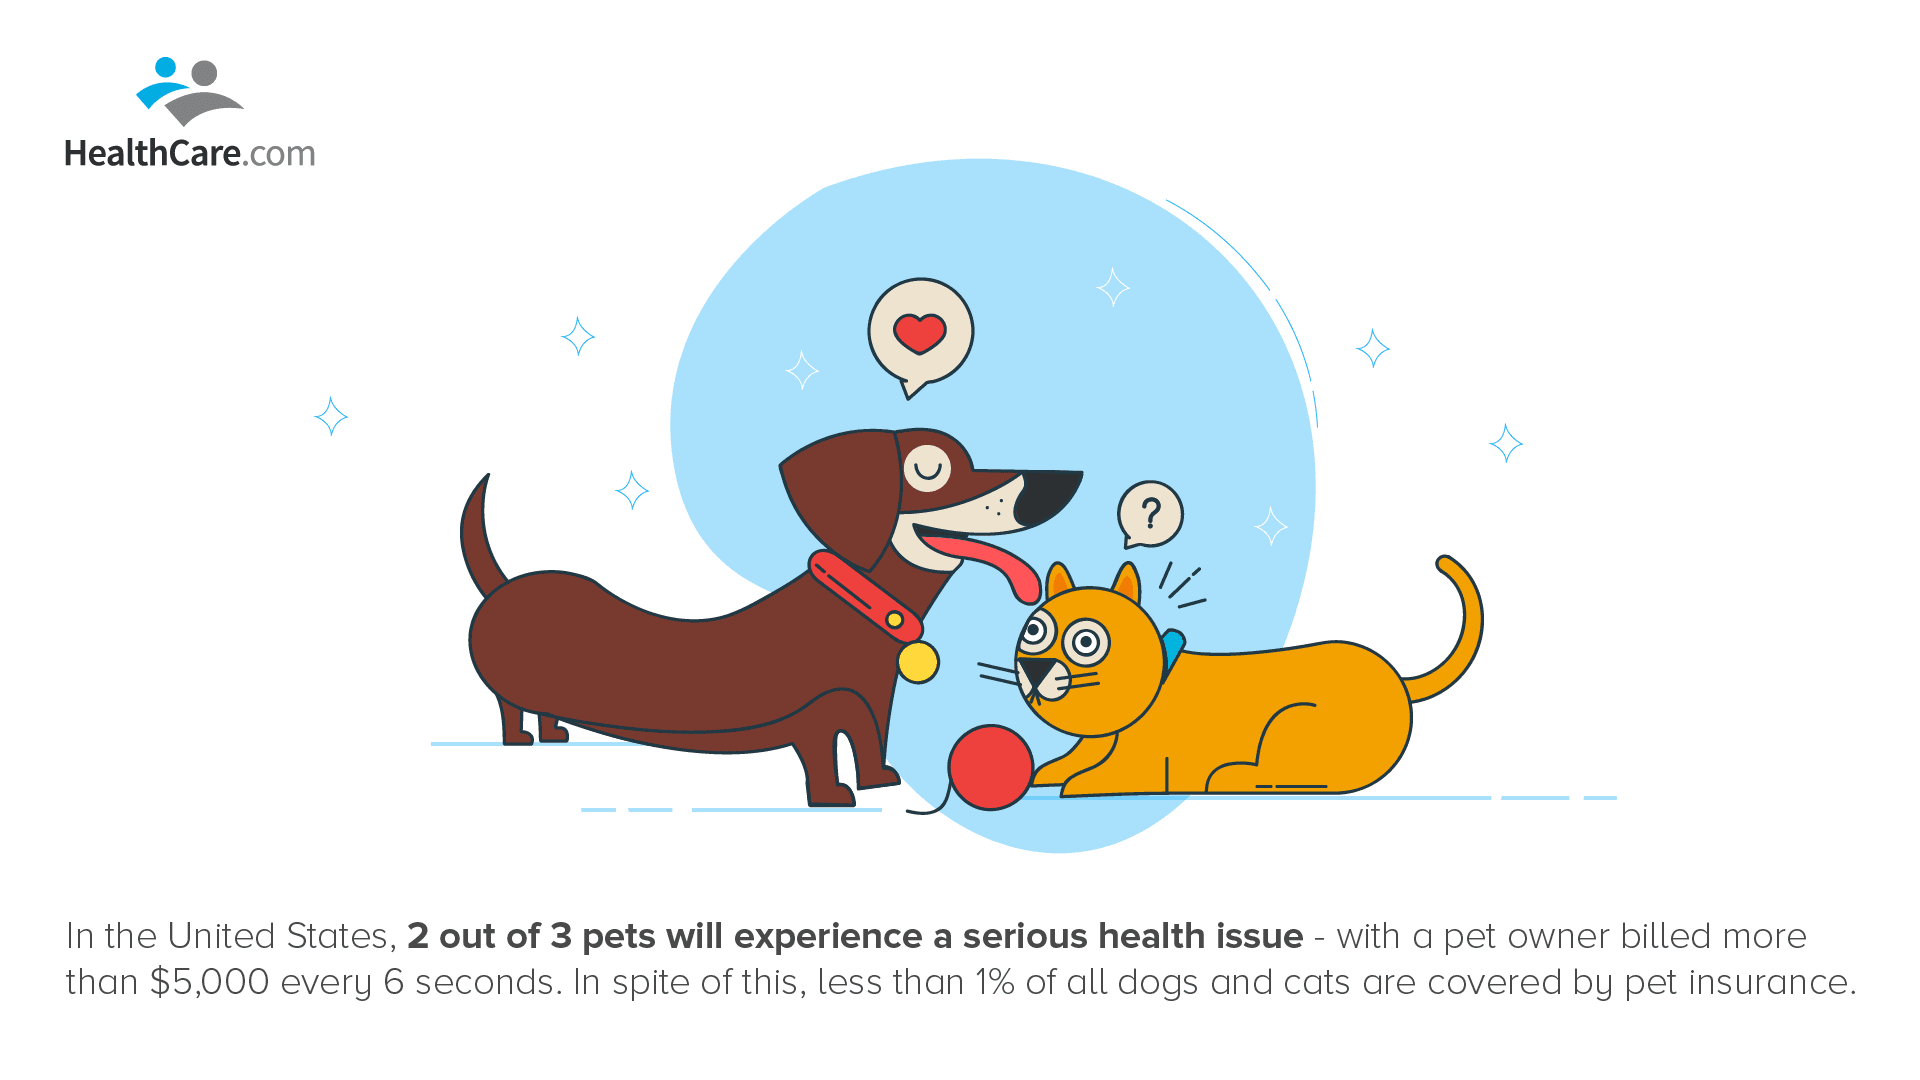 Health Insurance for Pets Illustration | The CheckUp by HealthCare.com